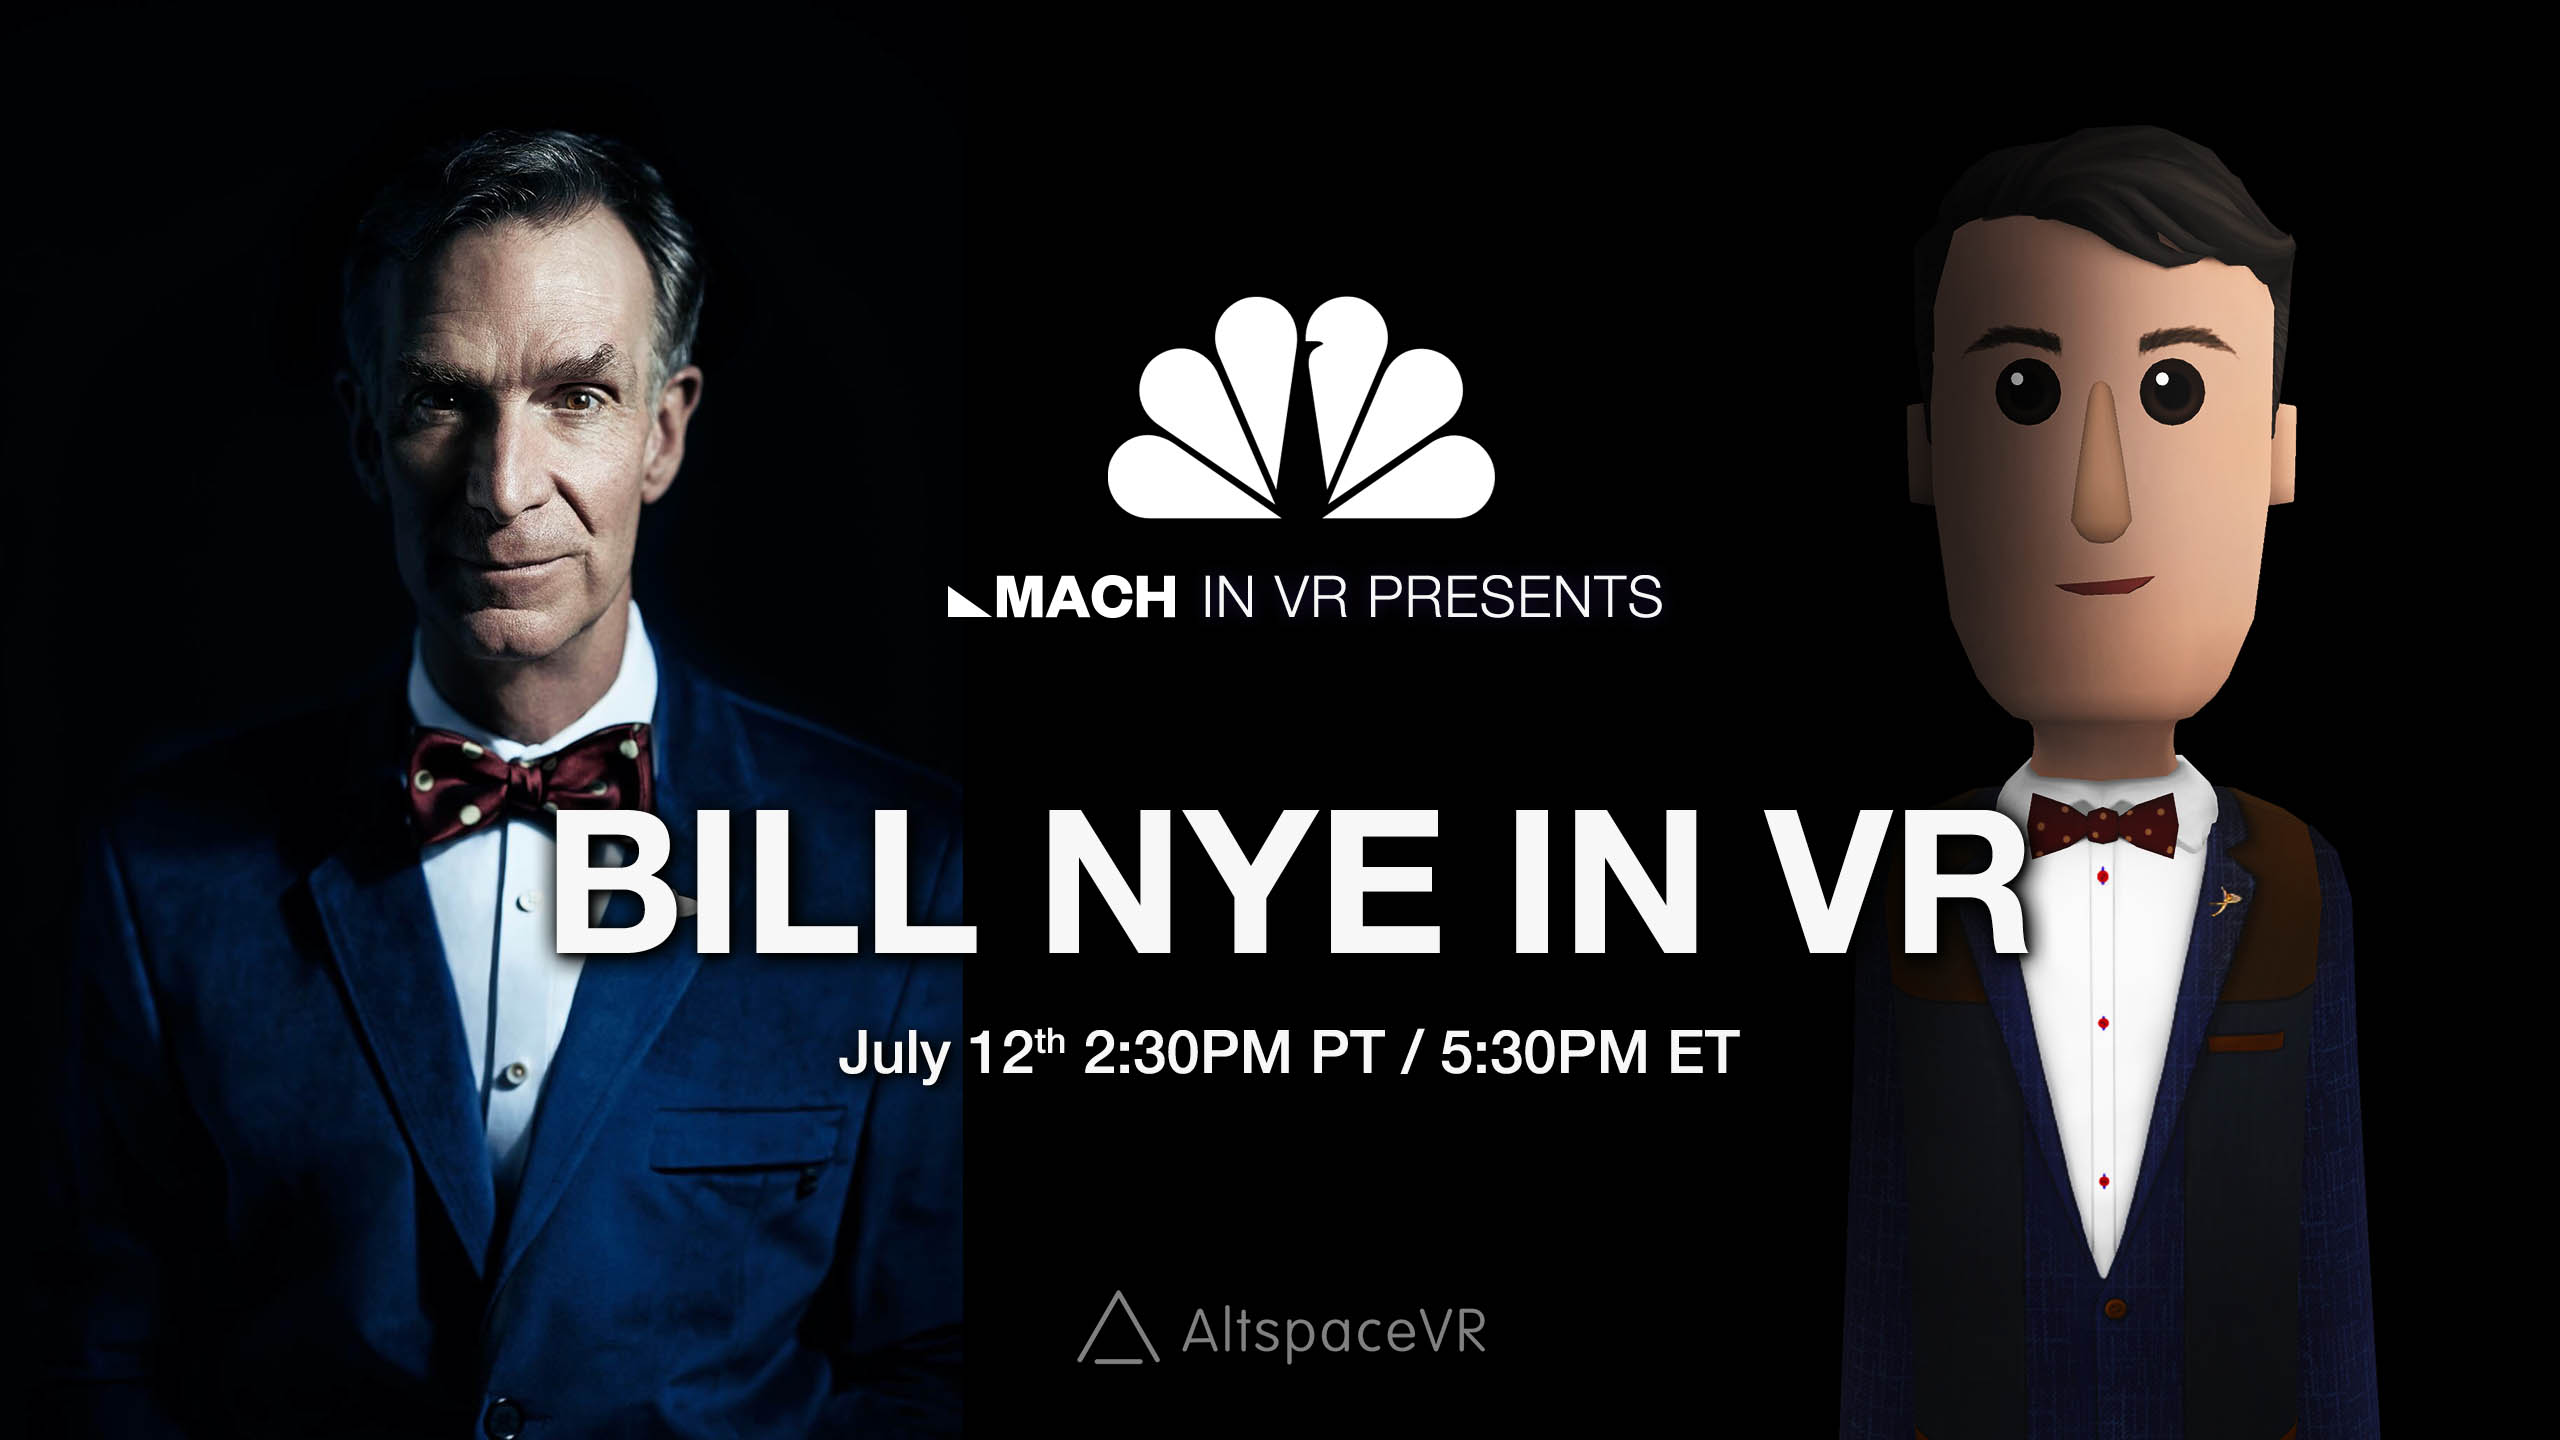 Bill Nye Coming To AltspaceVR To Talk About His Eight Principles Of Everything